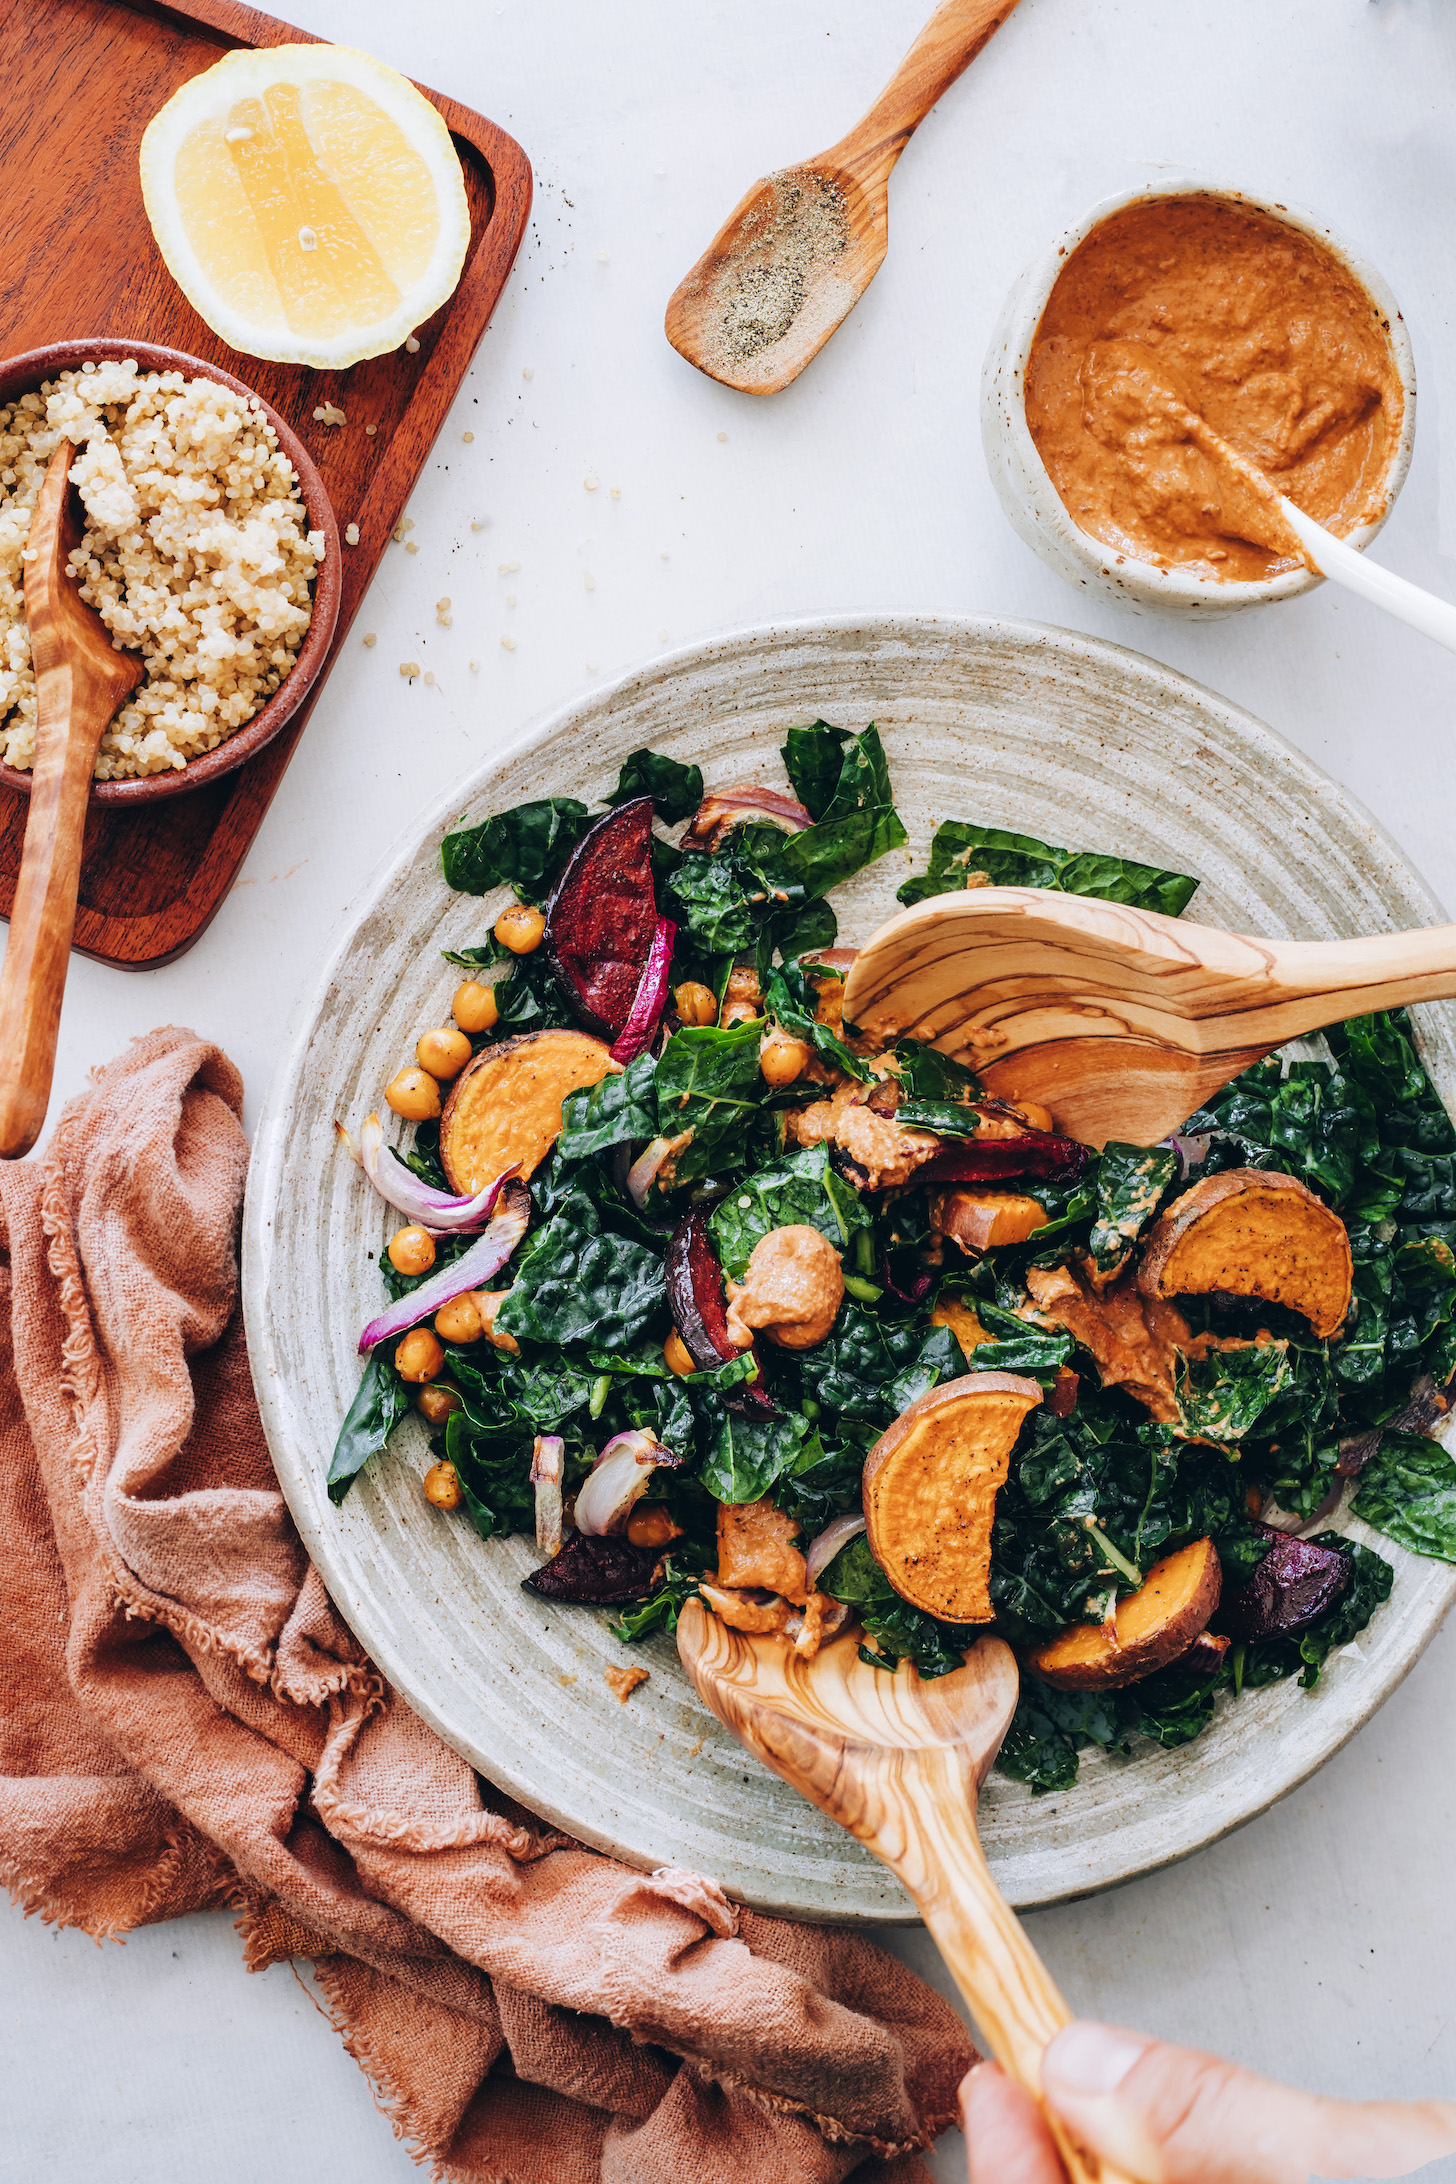 Bowl of kale with roasted vegetables and chipotle pecan pesto